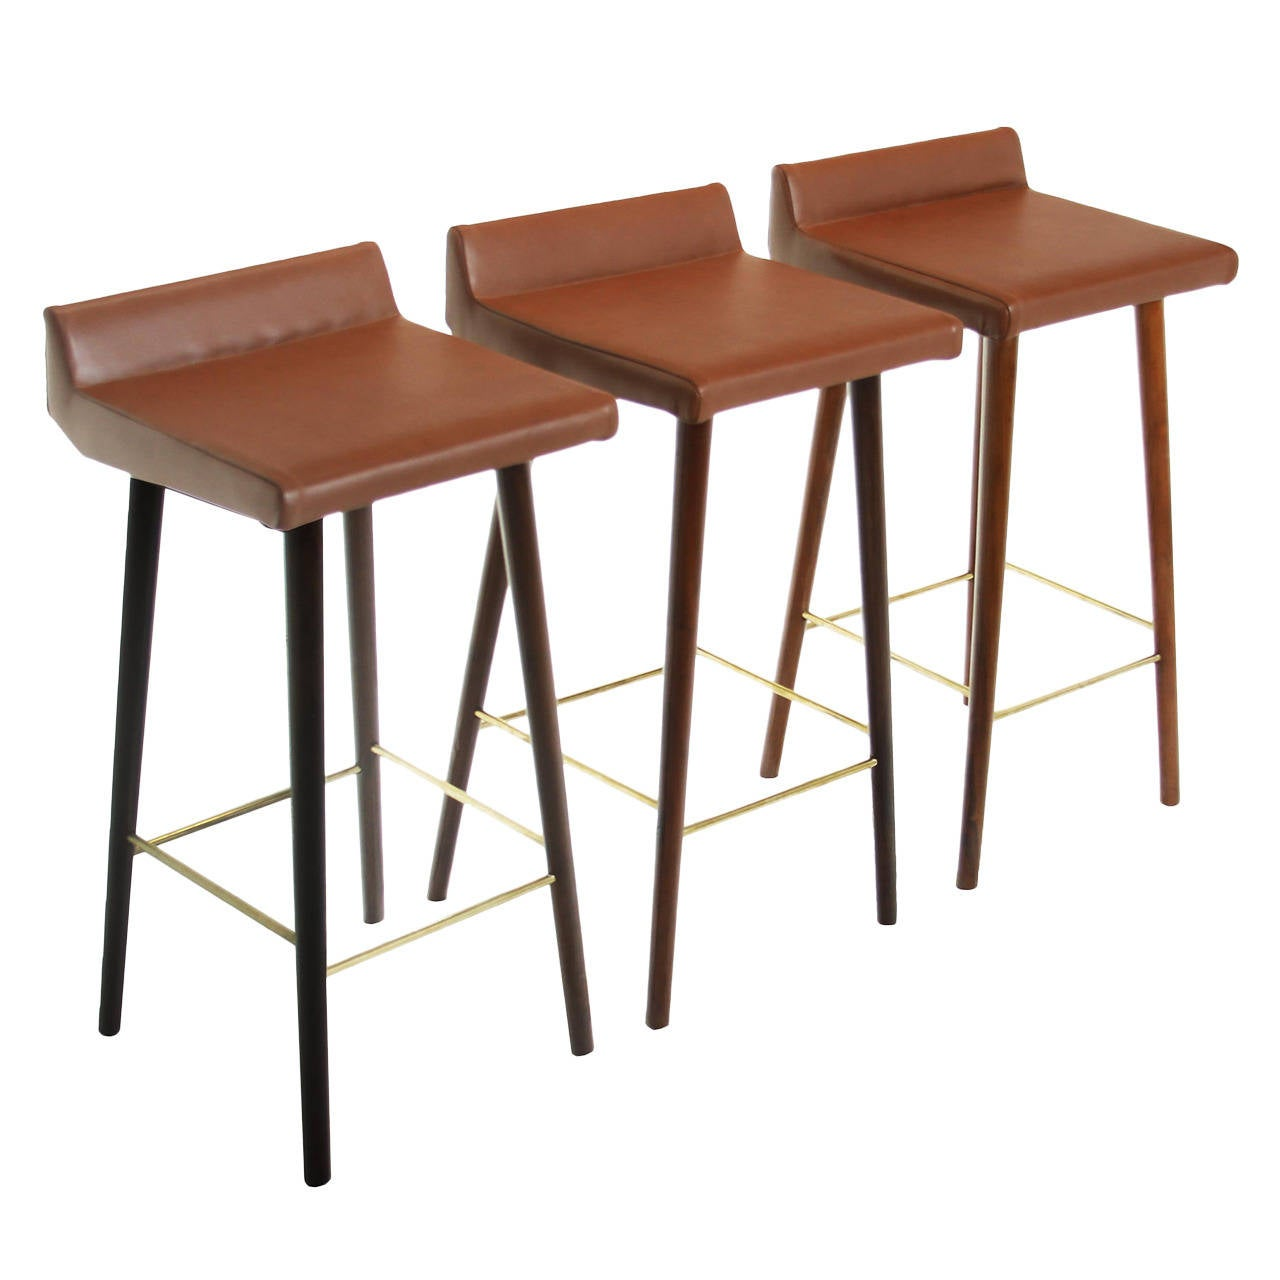 Marvelous photograph of Set of Three Wood Leather and Brass Bar Stools by Cimo from Brazil at  with #7D4831 color and 1280x1280 pixels